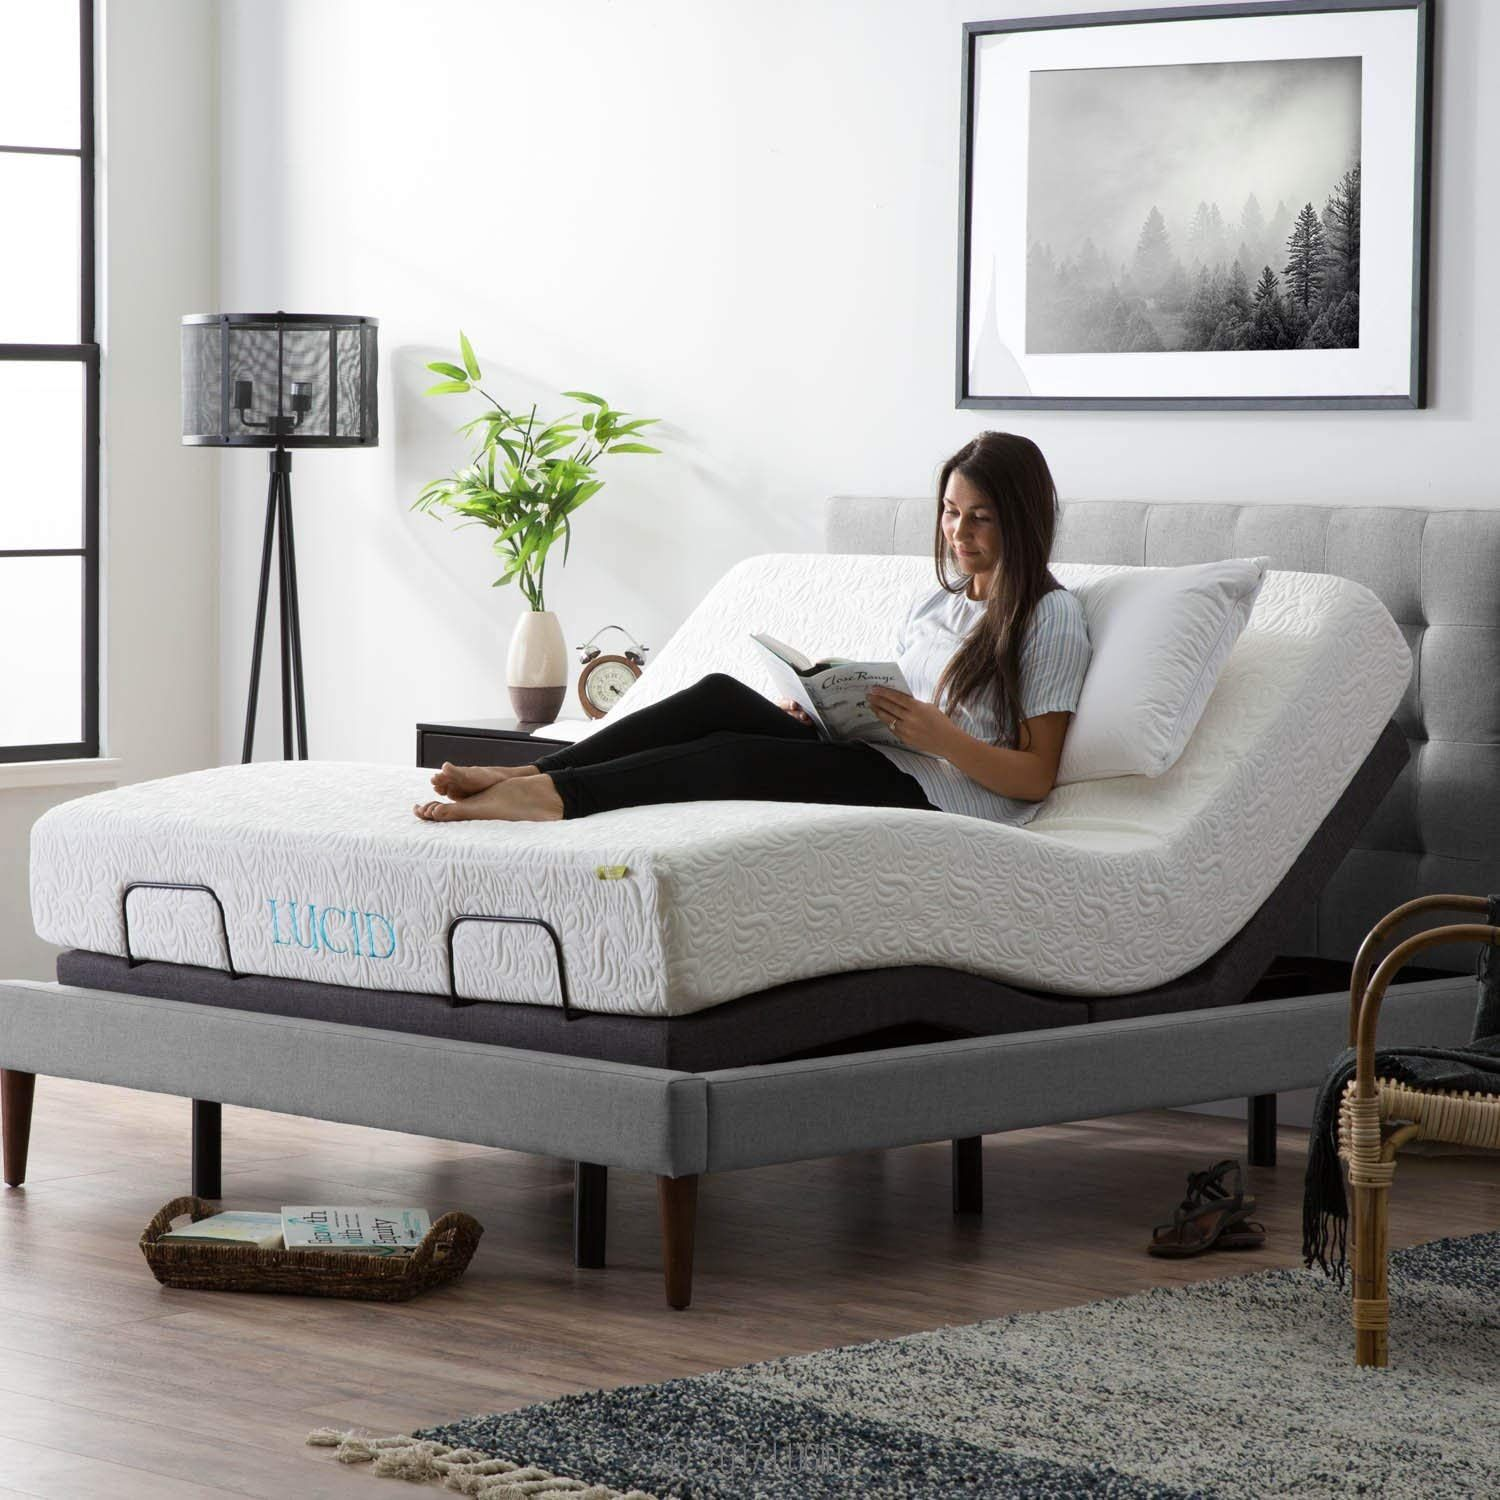 Lucid L300 Bed Base 5 Minute Assembly Adjustable Queen Charcoal Https Amzn To 2ql6njl In 2020 Adjustable Bed Base Adjustable Bed Frame Adjustable Beds